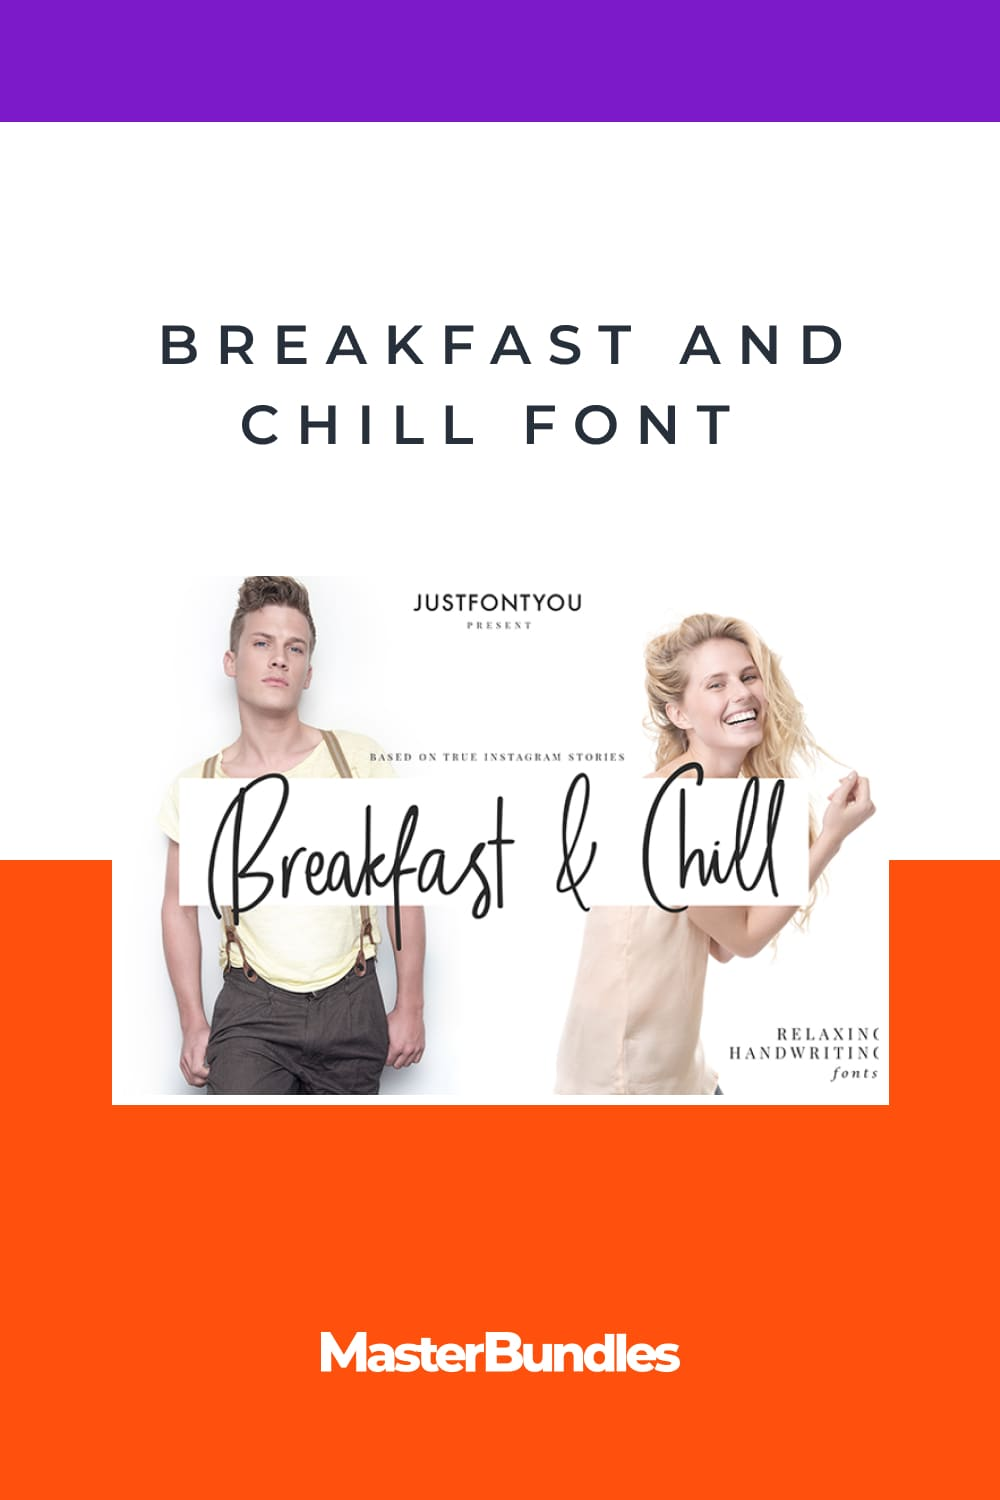 Stylish and sinuous font.